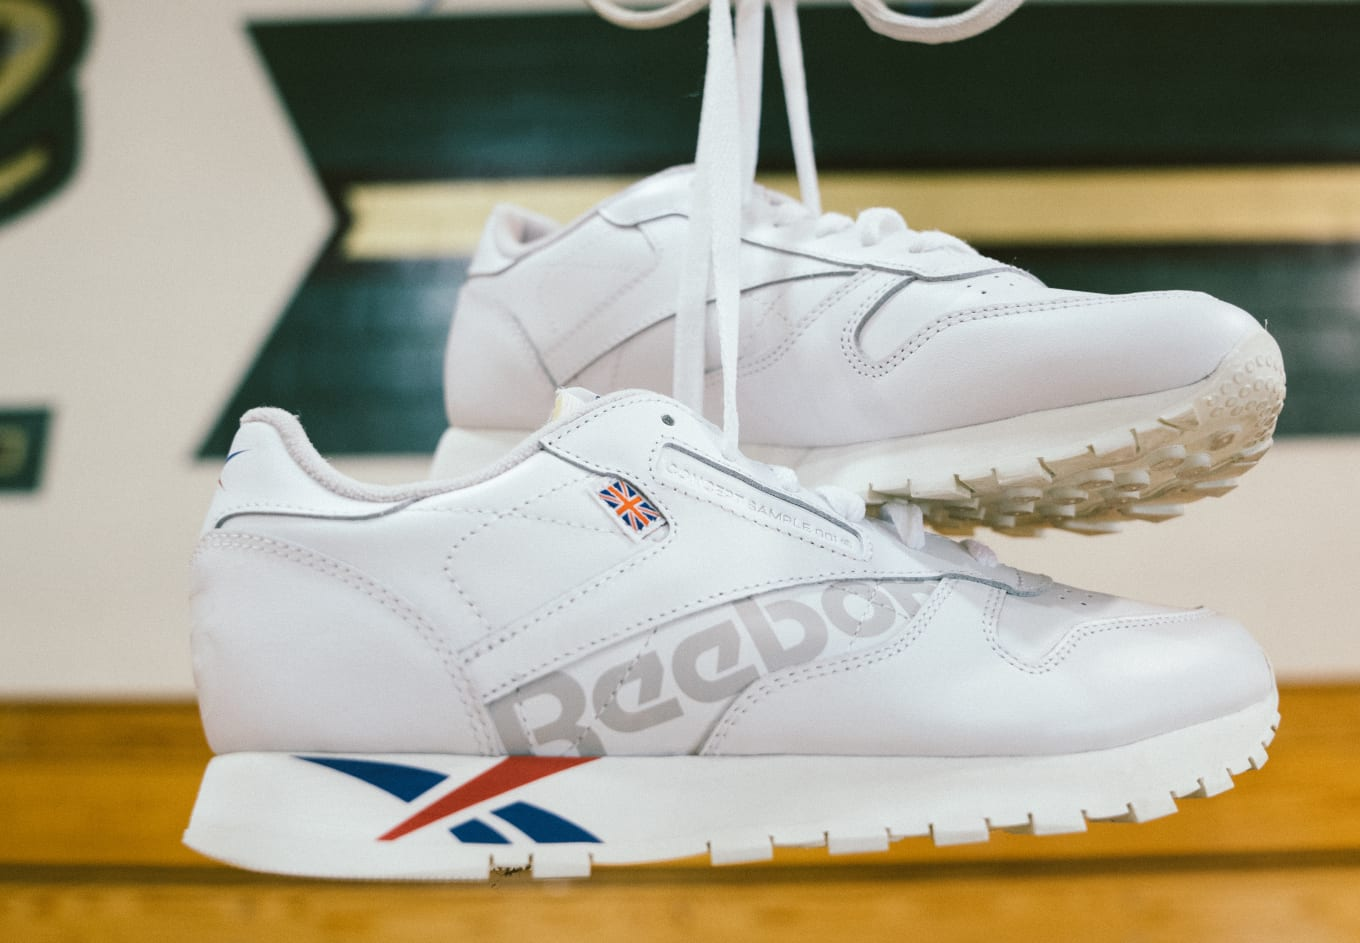 38d82a1b8e5156 Reebok Classic  Alter the Icons  Collection Release Date